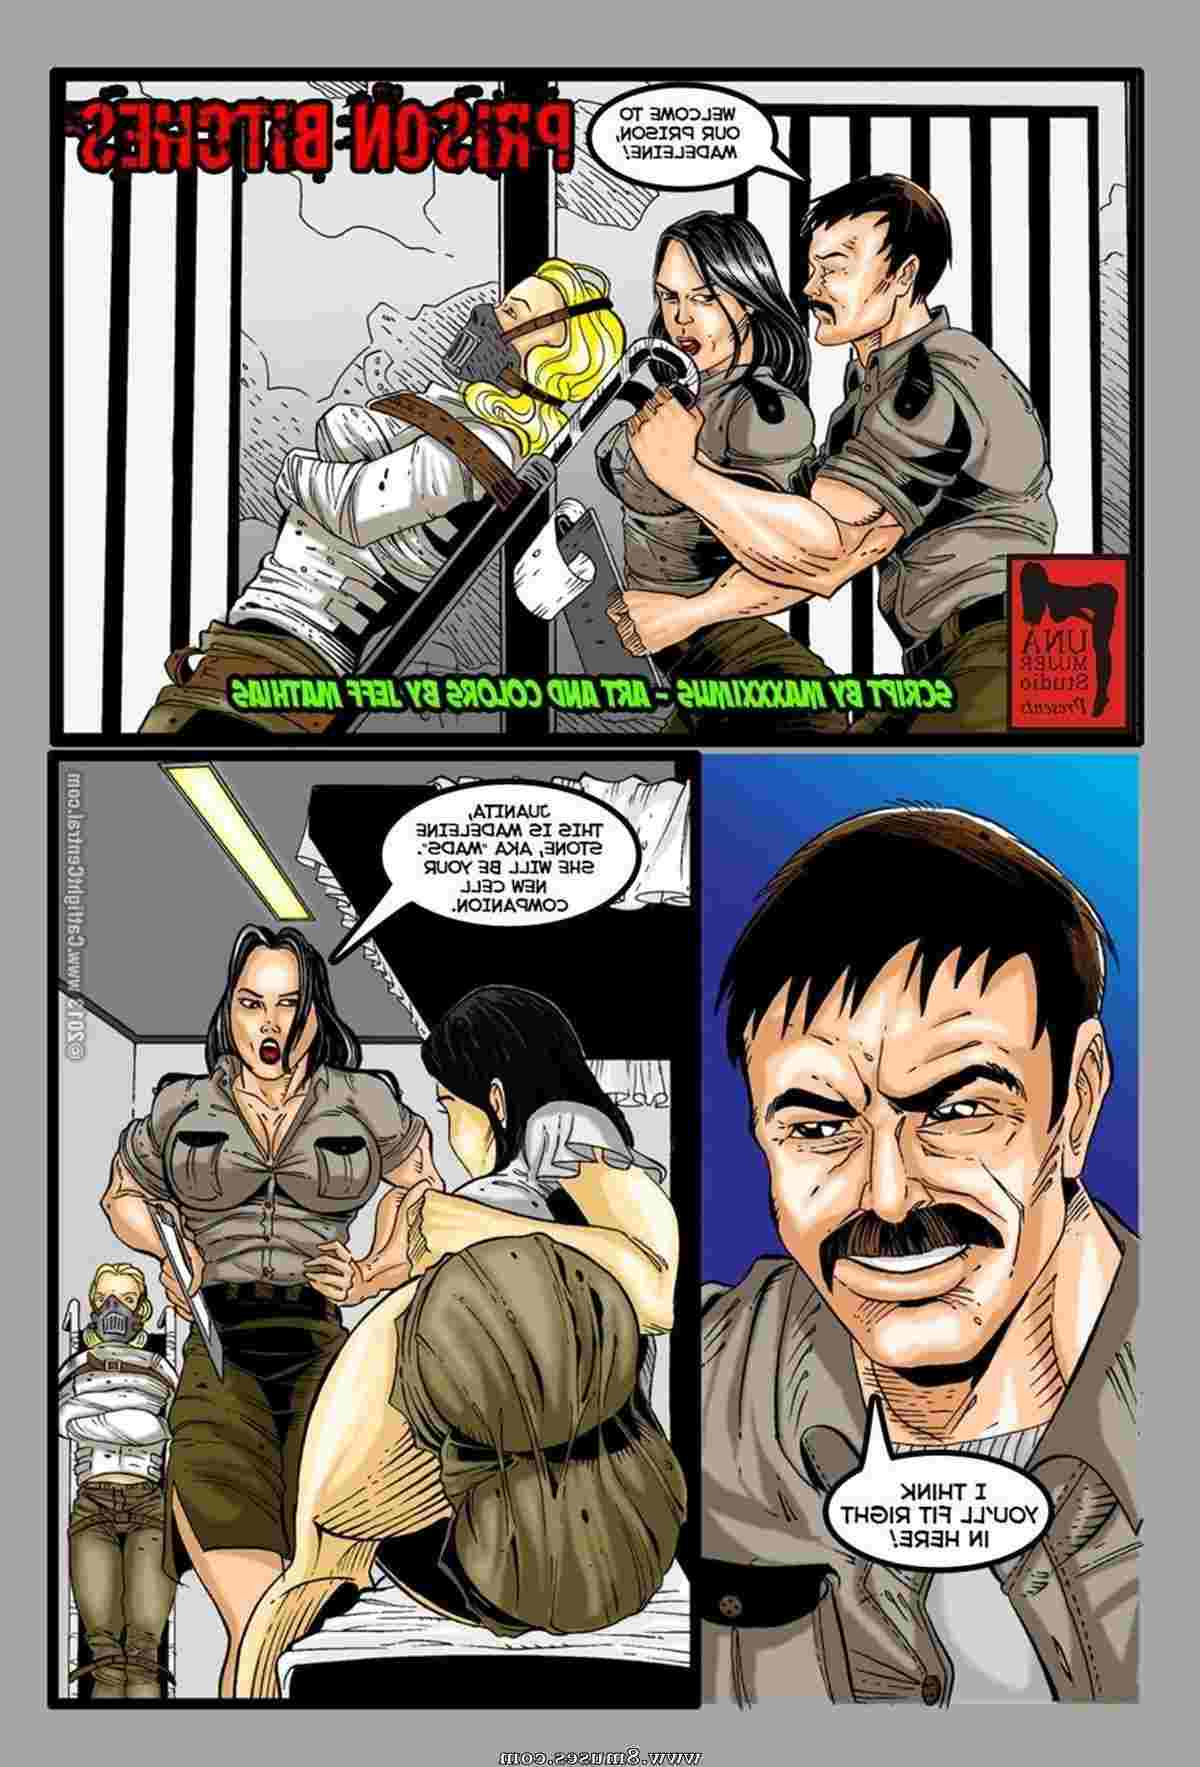 Central-Comics/Catfight-Central/Prison-Bitches Prison_Bitches__8muses_-_Sex_and_Porn_Comics_36.jpg